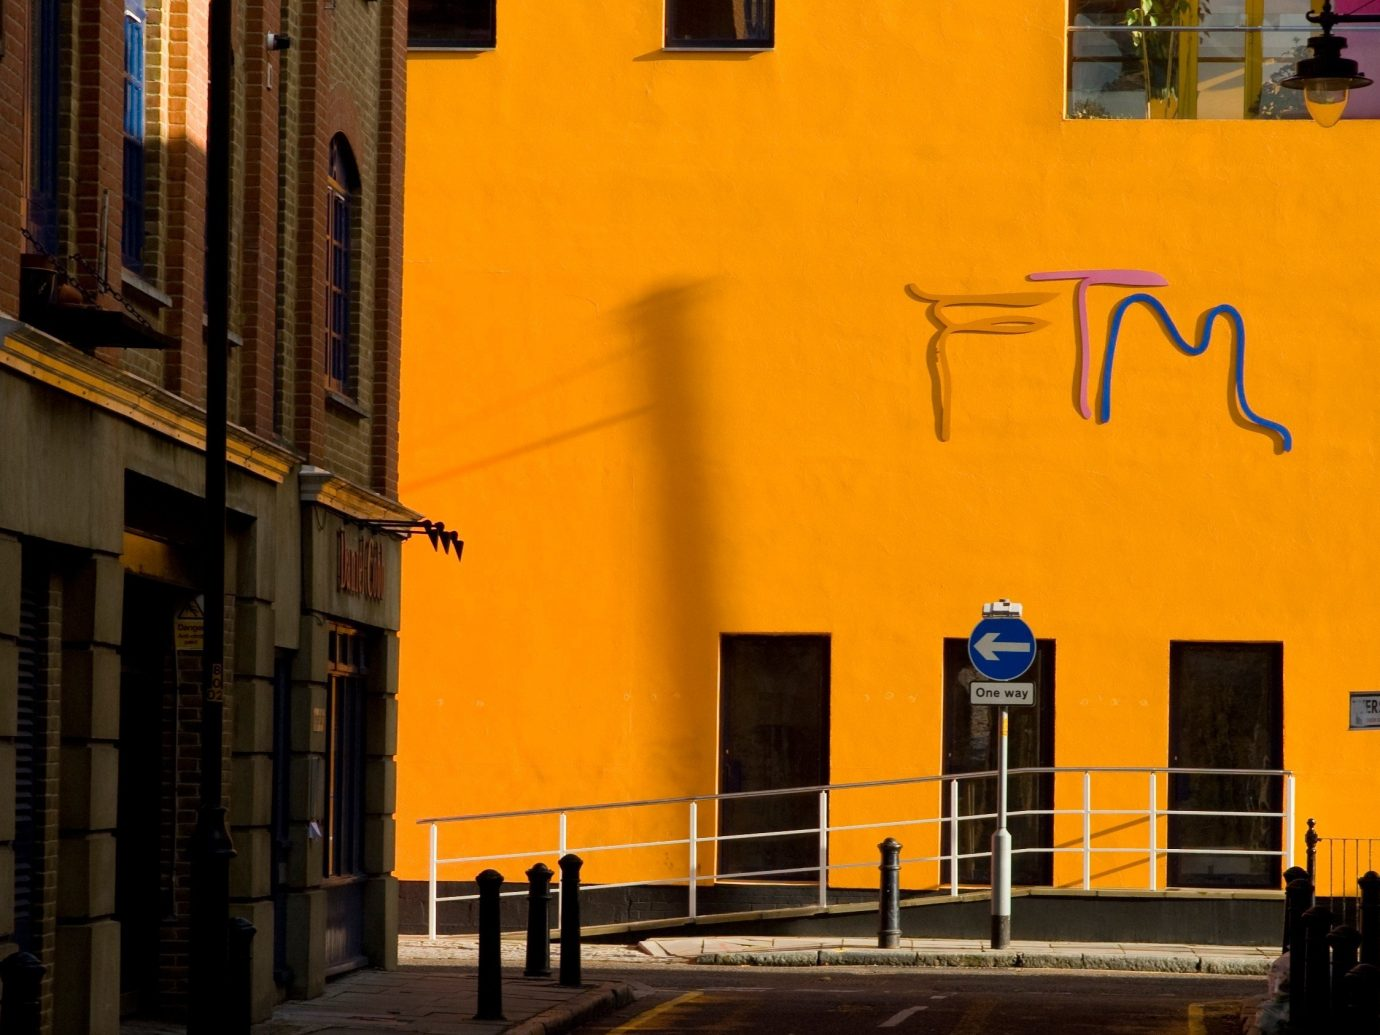 Jetsetter Guides building outdoor color road street urban area City yellow neighbourhood wall night Architecture facade Downtown evening infrastructure alley cityscape way sidewalk